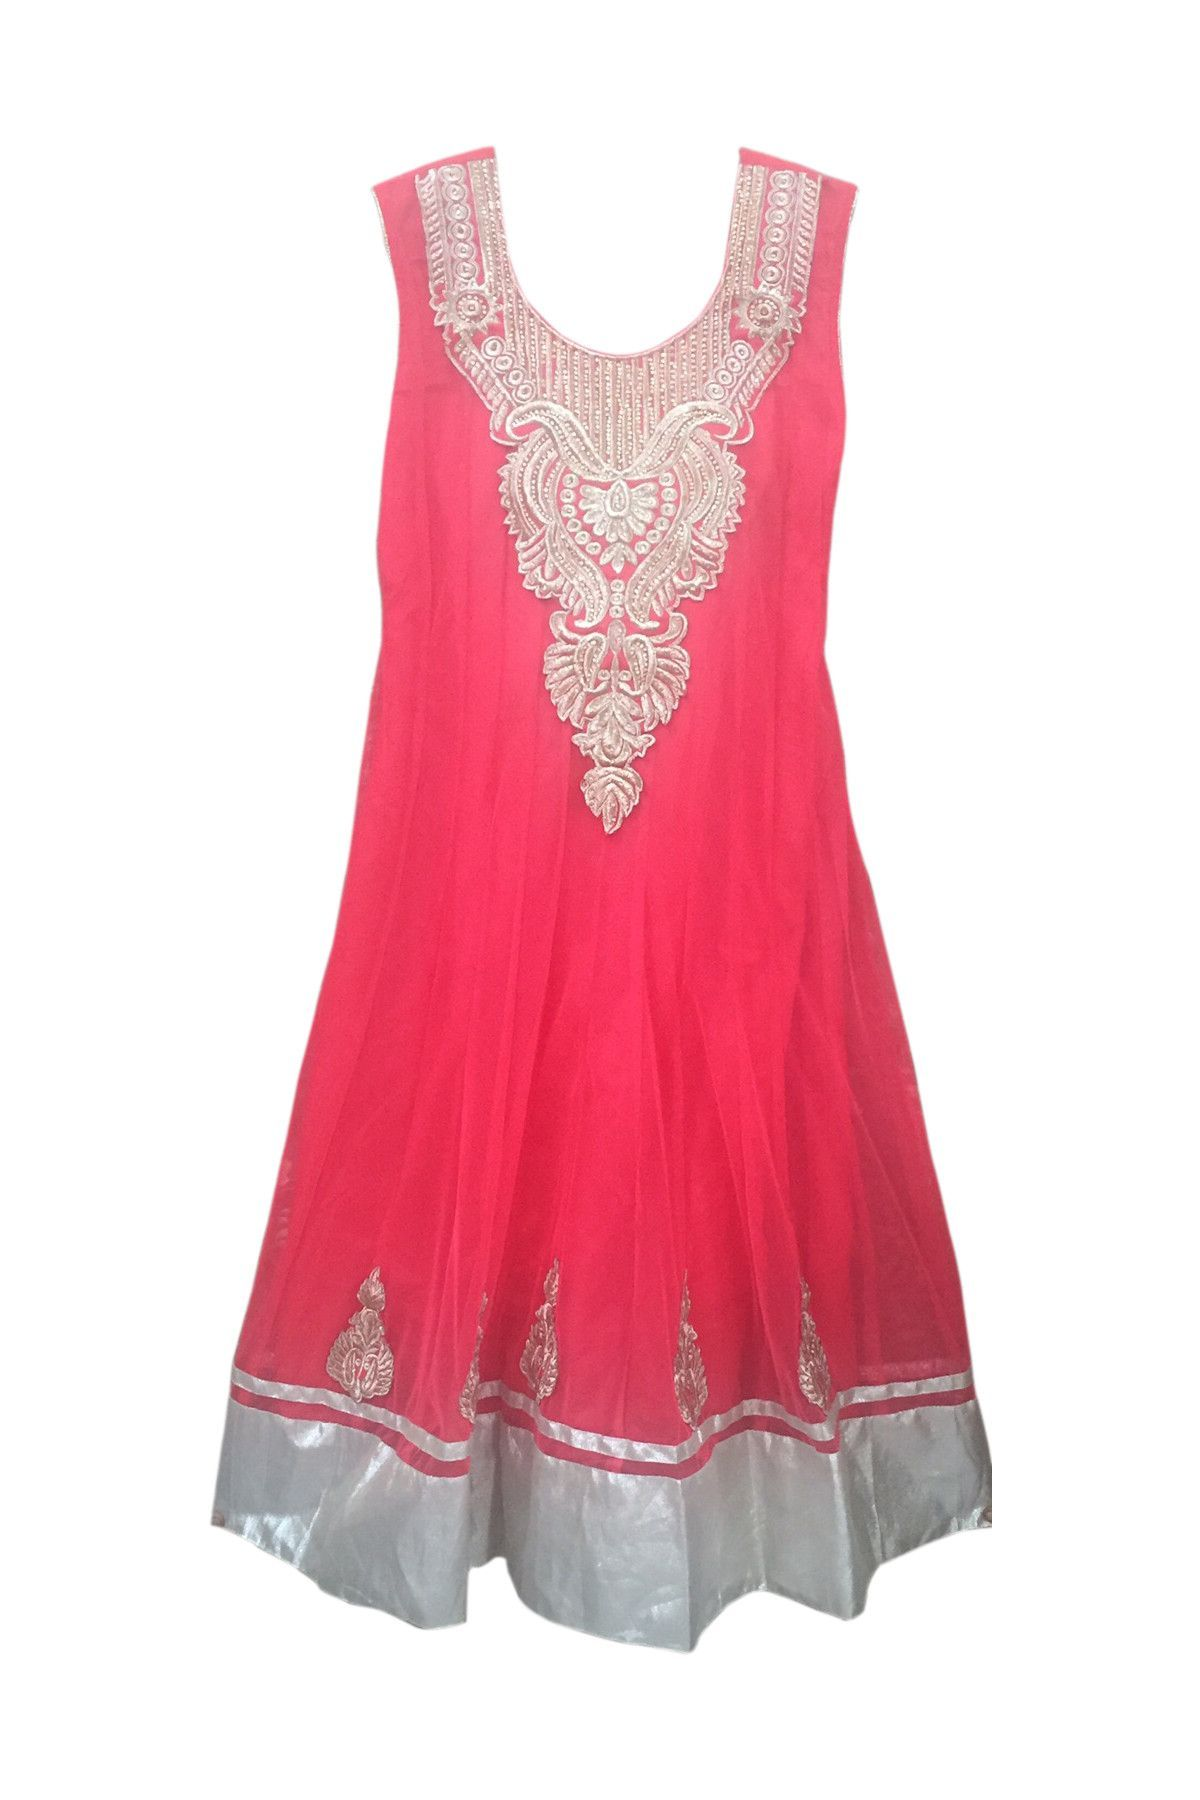 Womensu long length anarkali dress red products dresses and